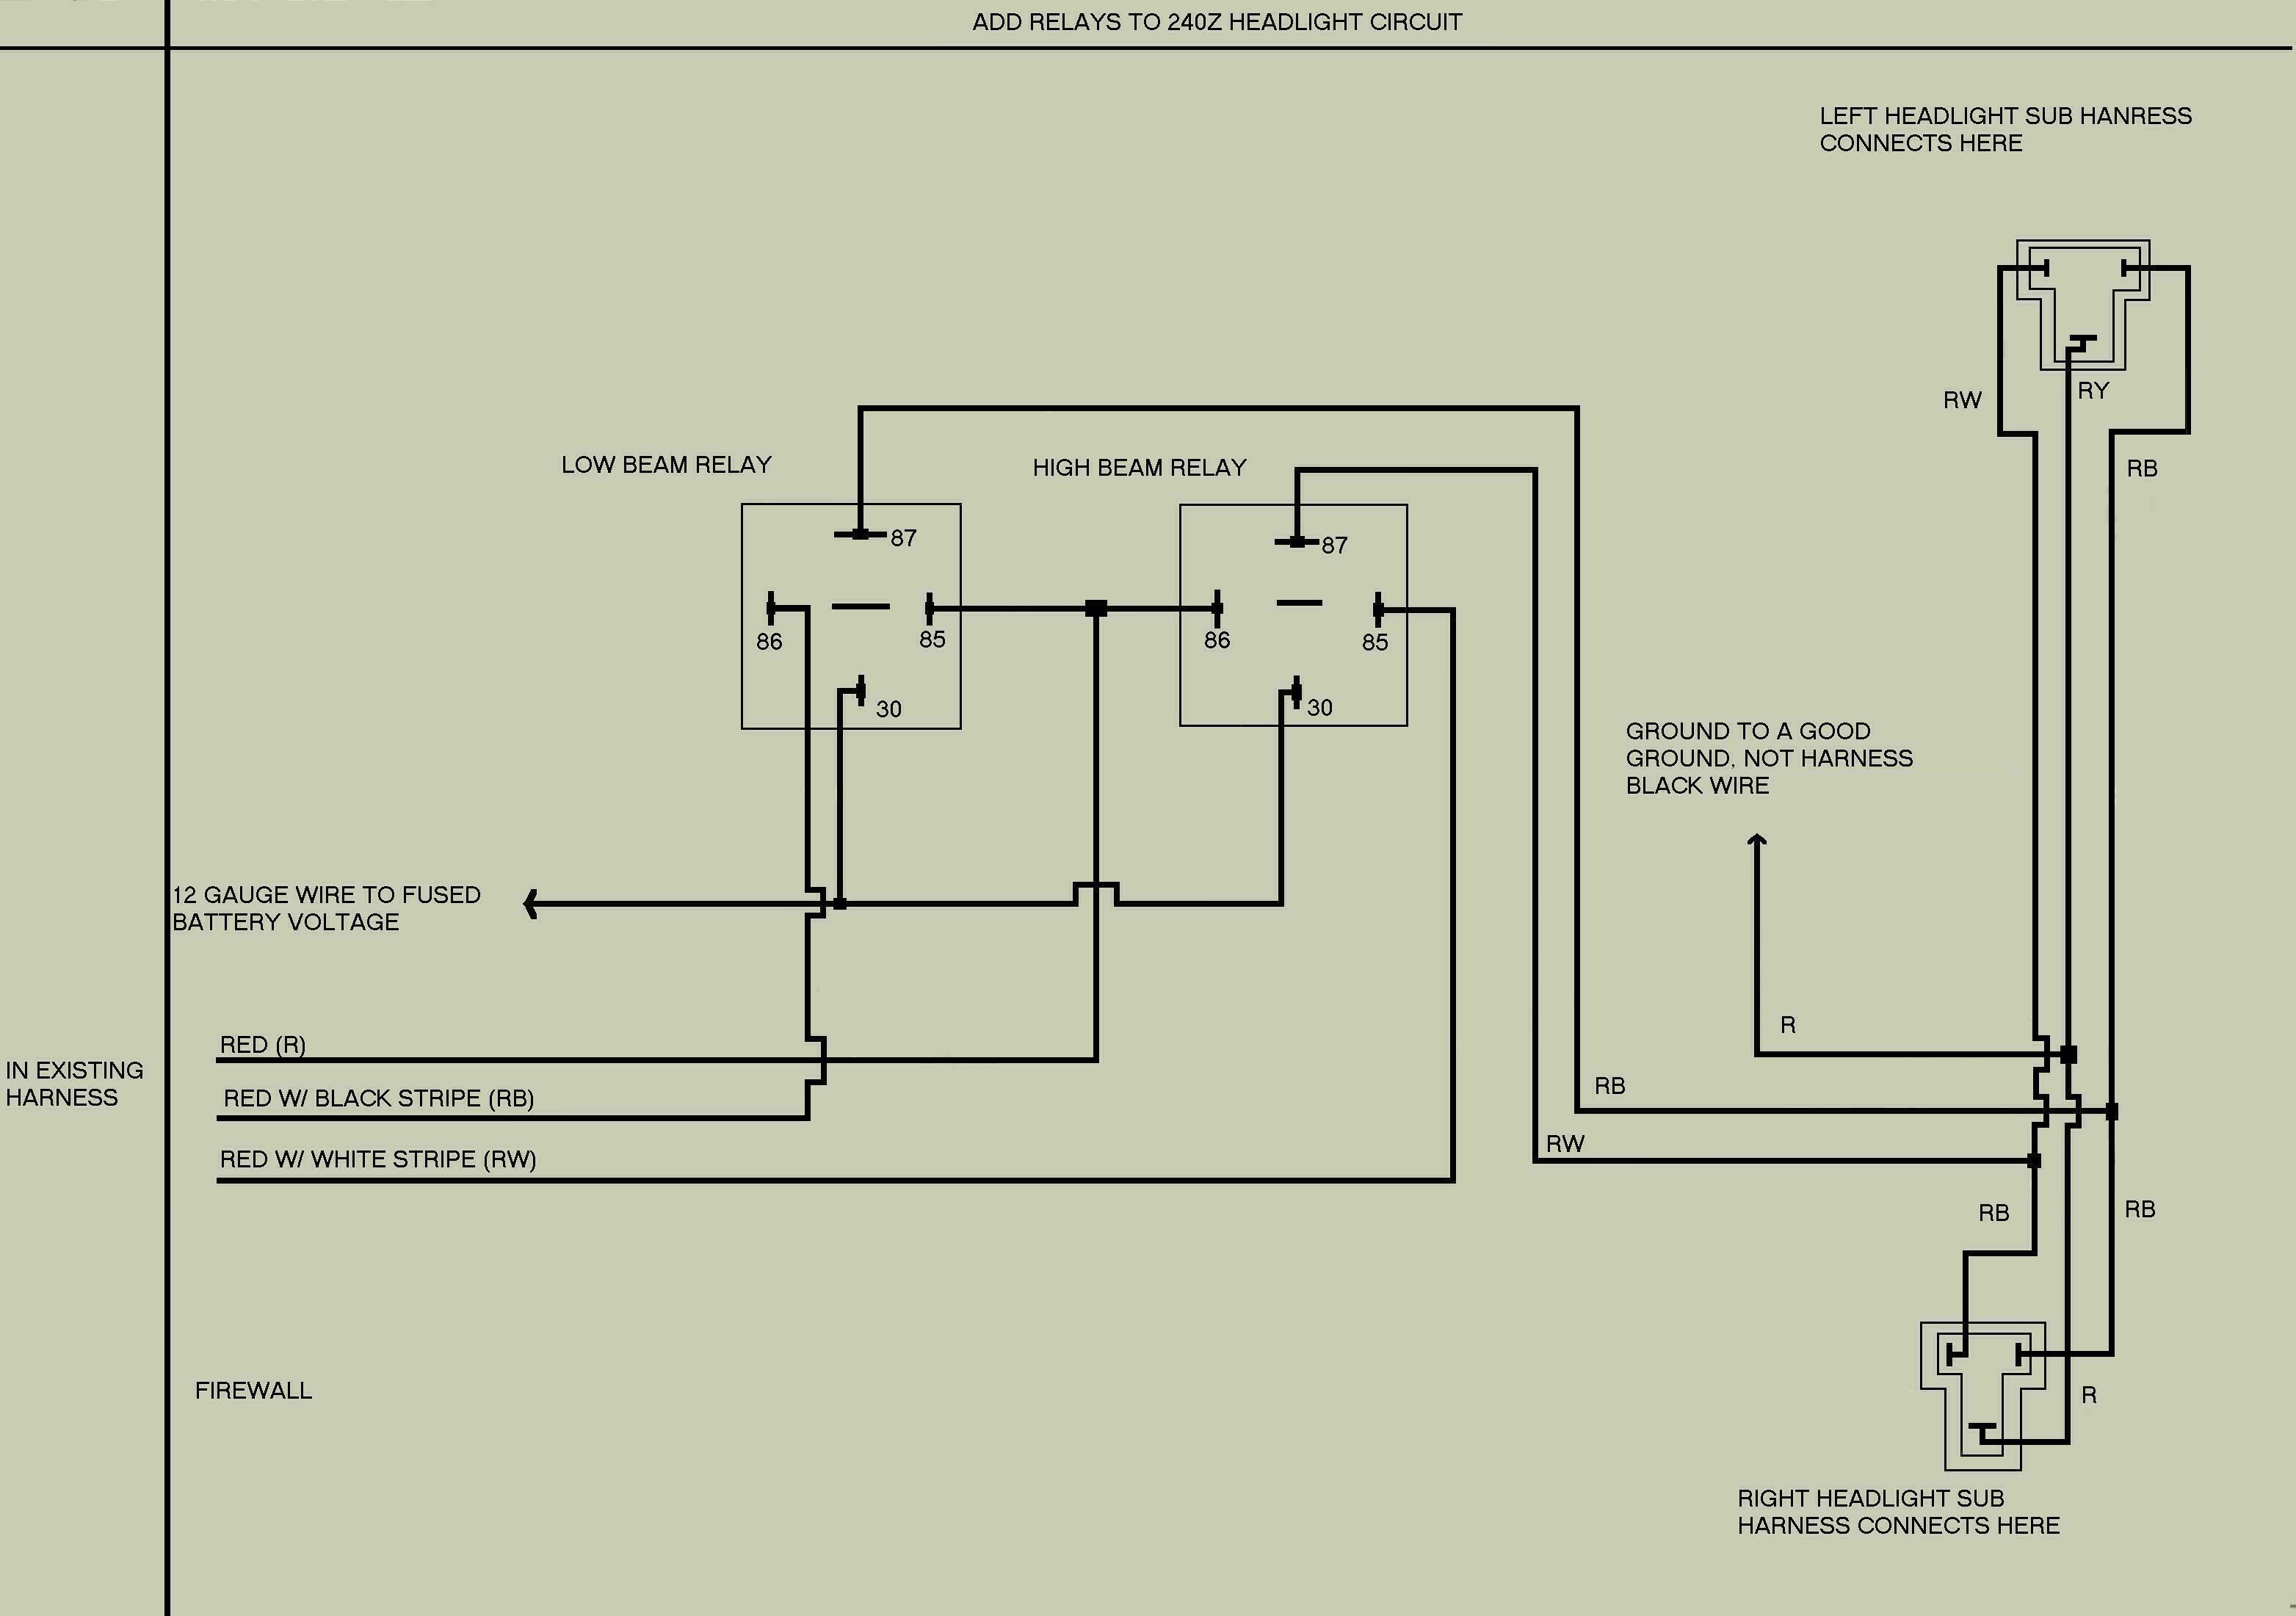 Headlight_Relay_Diagram 240z headlight relay mod GM Headlight Relay Location at crackthecode.co